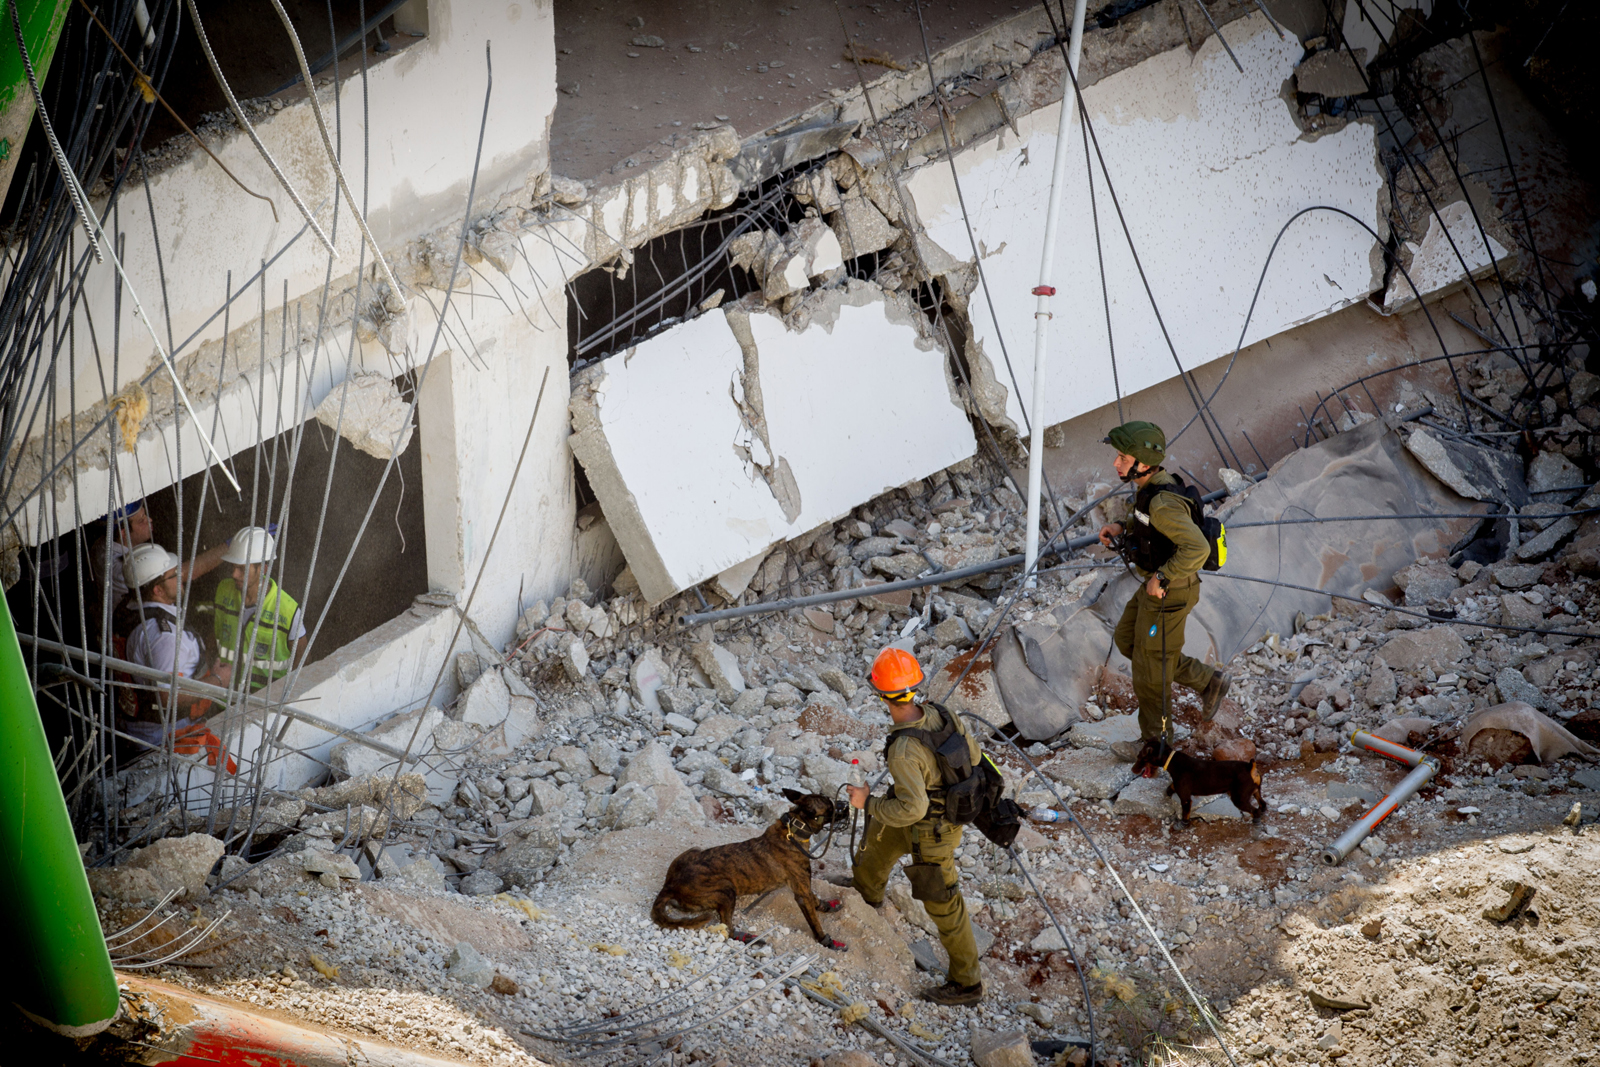 Rescue workers and canine units in action at the collapsed construction site in Tel Aviv, on September 5, 2016. Photo by Miriam Alster/Flash90